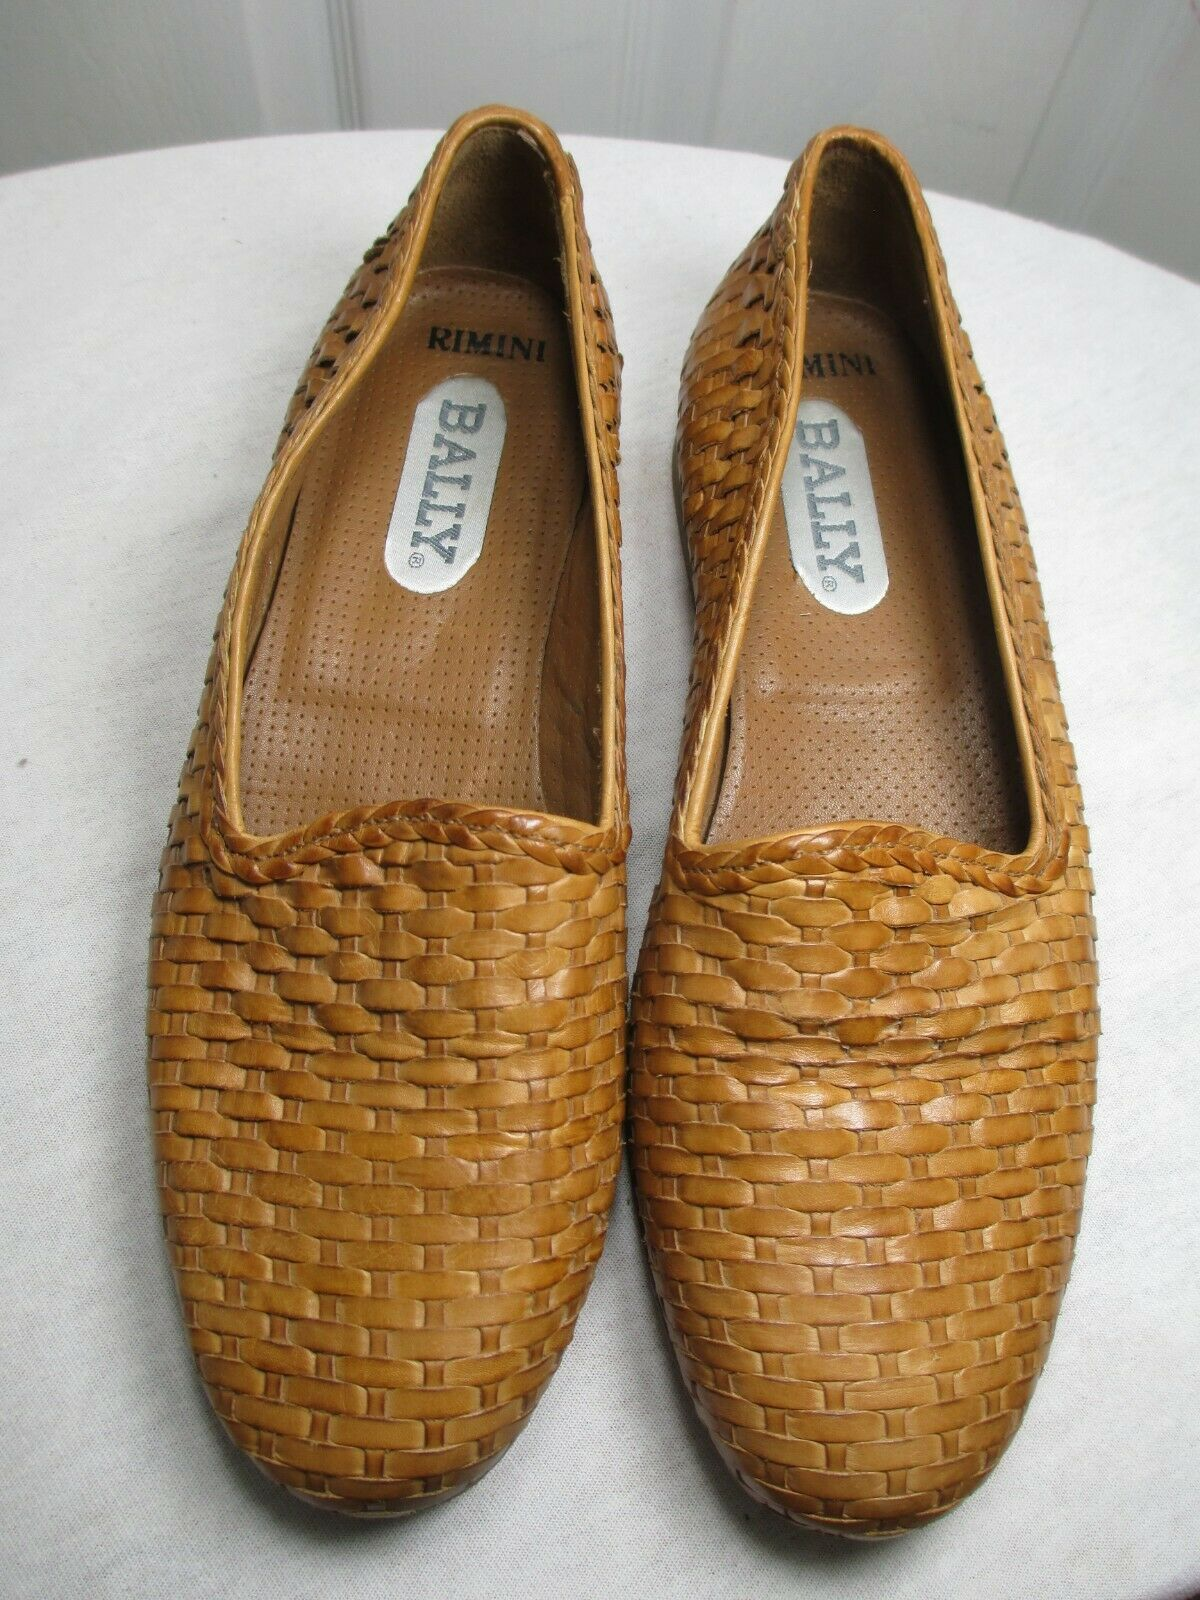 BALLY WOMEN'S COGNAC WOVEN LEATHER LOAFERS SIZE 7 M MADE IN ITALY